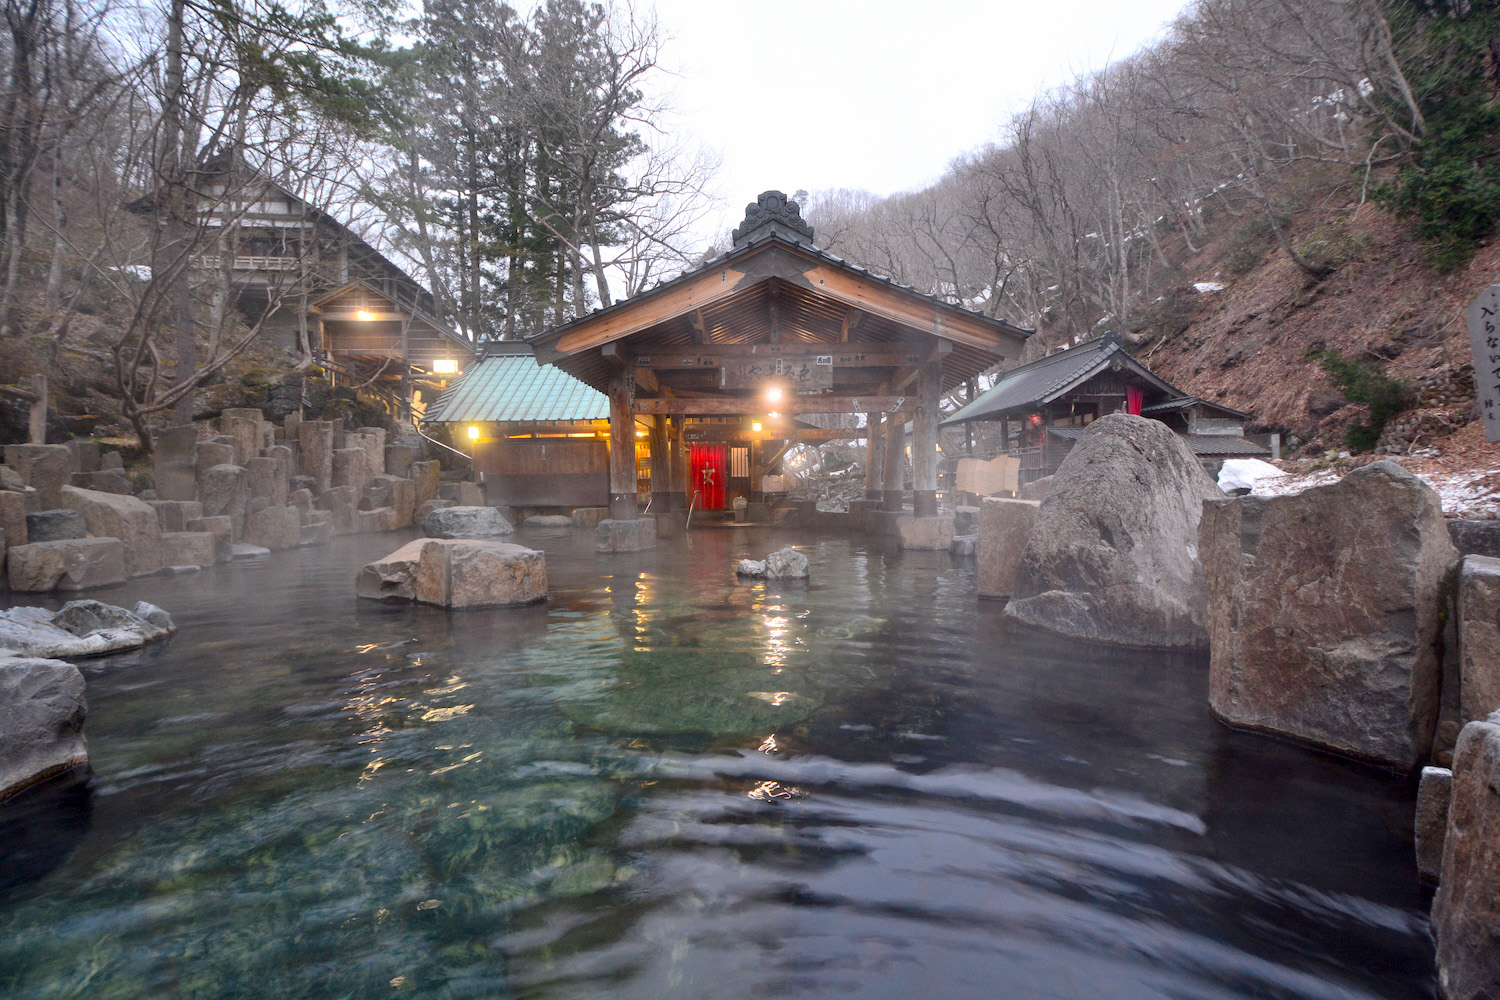 As Far Onsens Are Concerned I Really Enjoyed The Historical Atmosphere Of Aforementioned Dogo Onsen But To Be Honest Haven T Visited Many Other